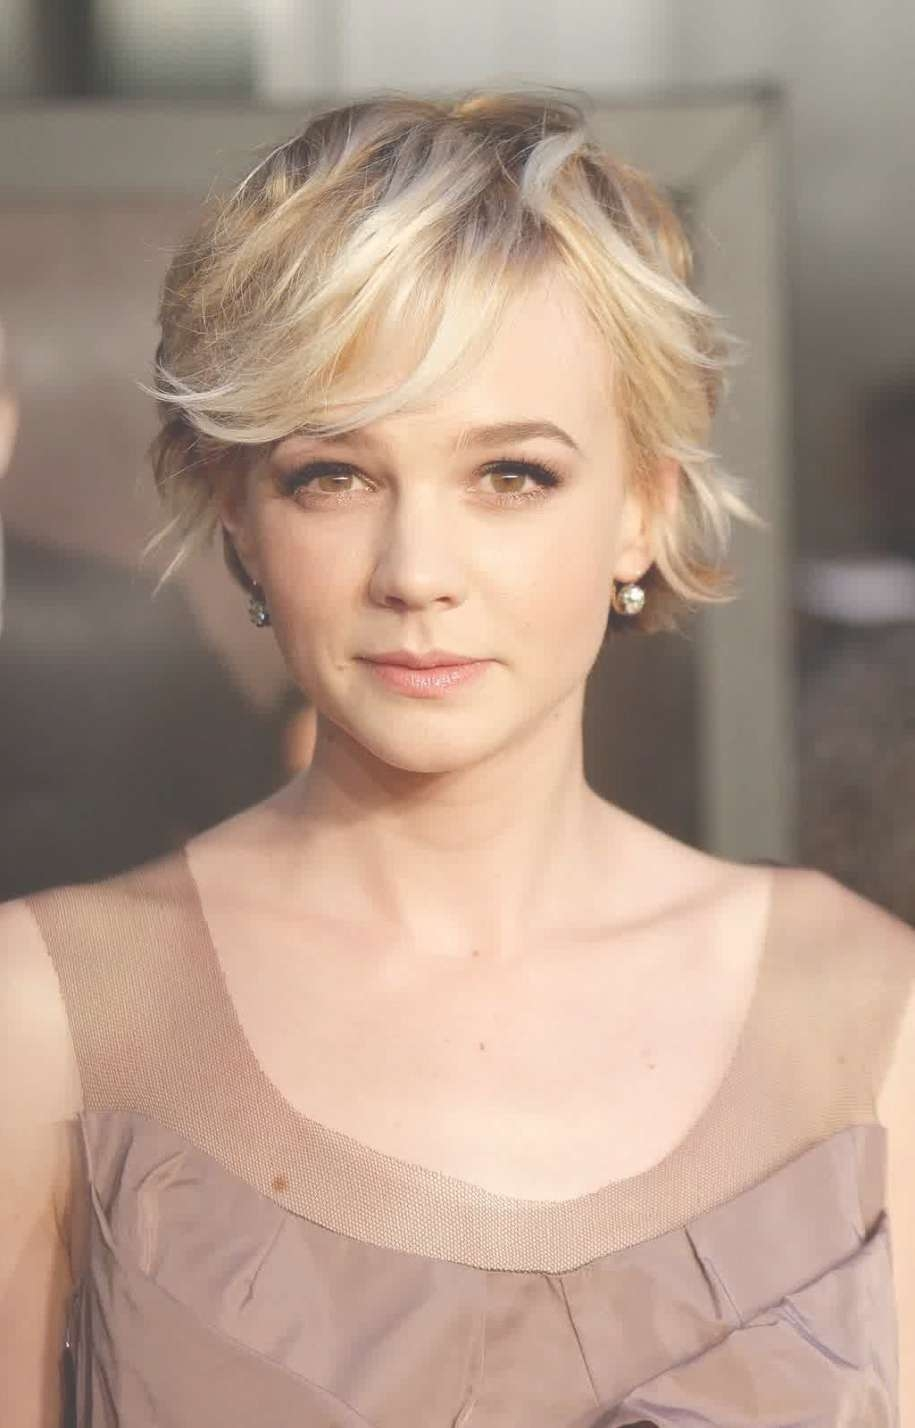 Celebrity Hairstyles: Carey Mulligan Pixie Cut Trend Hairstyles In Newest Actress Pixie Hairstyles (View 7 of 15)